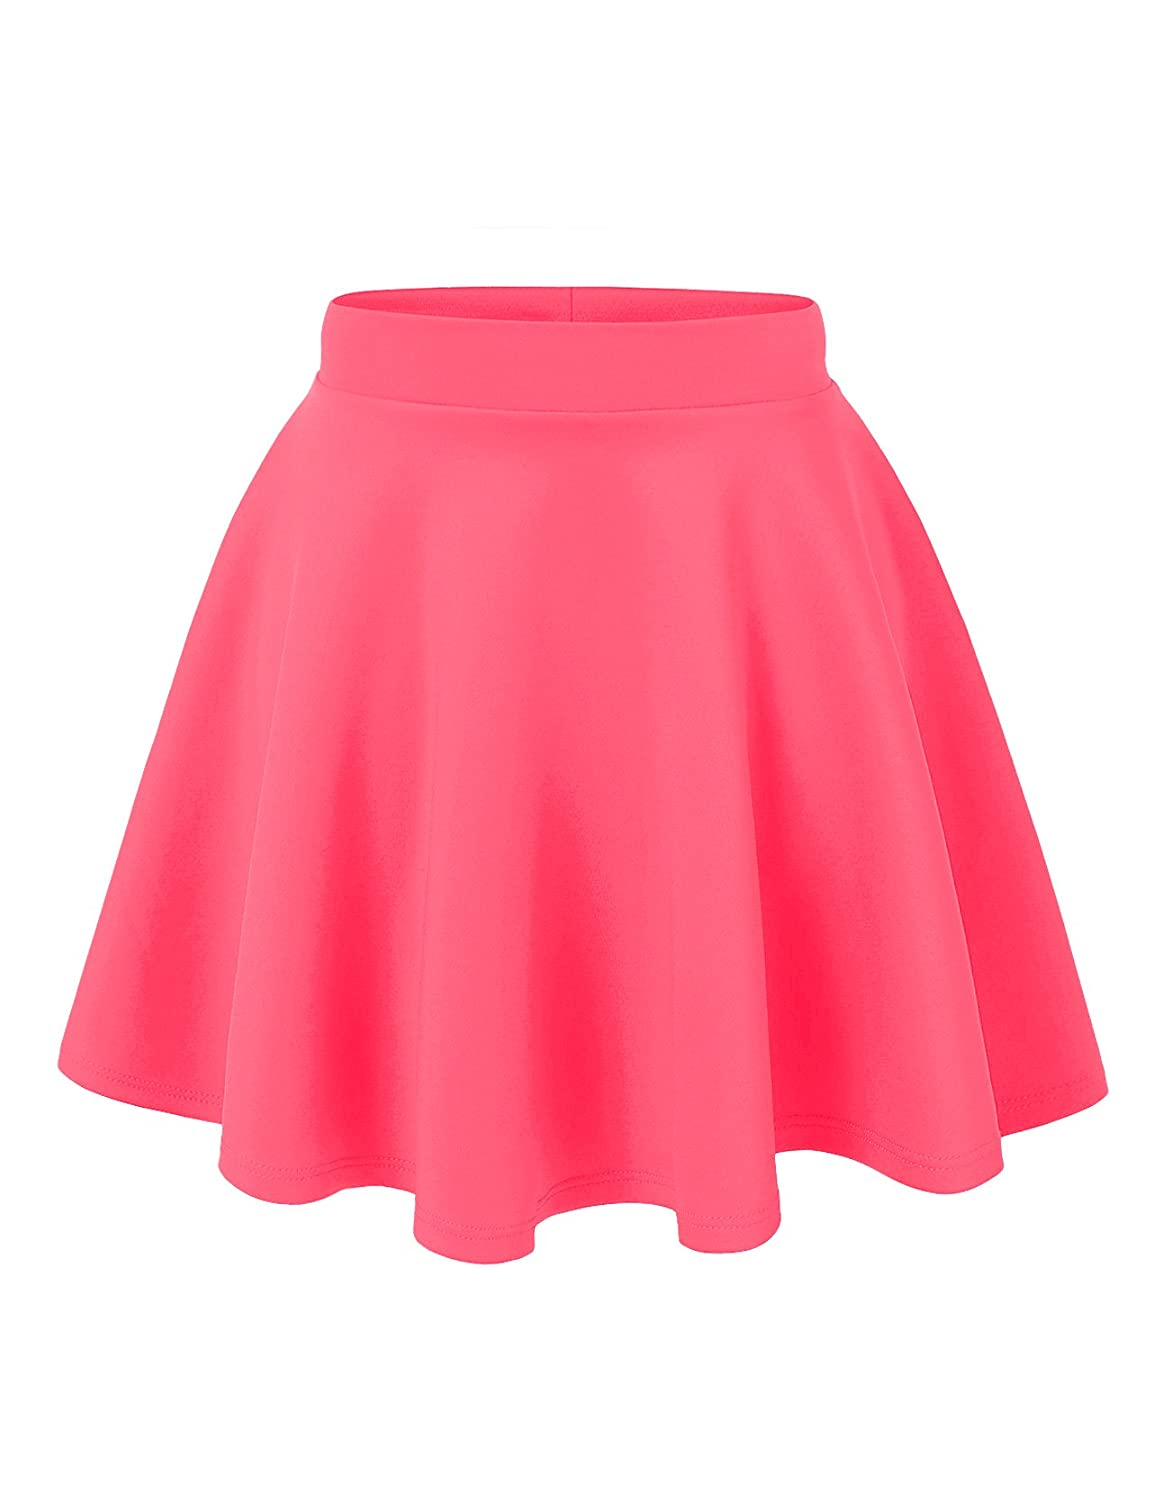 Noble U Women's Basic Solid Versatile Stretchy Swing Mini Skater Skirt S4927